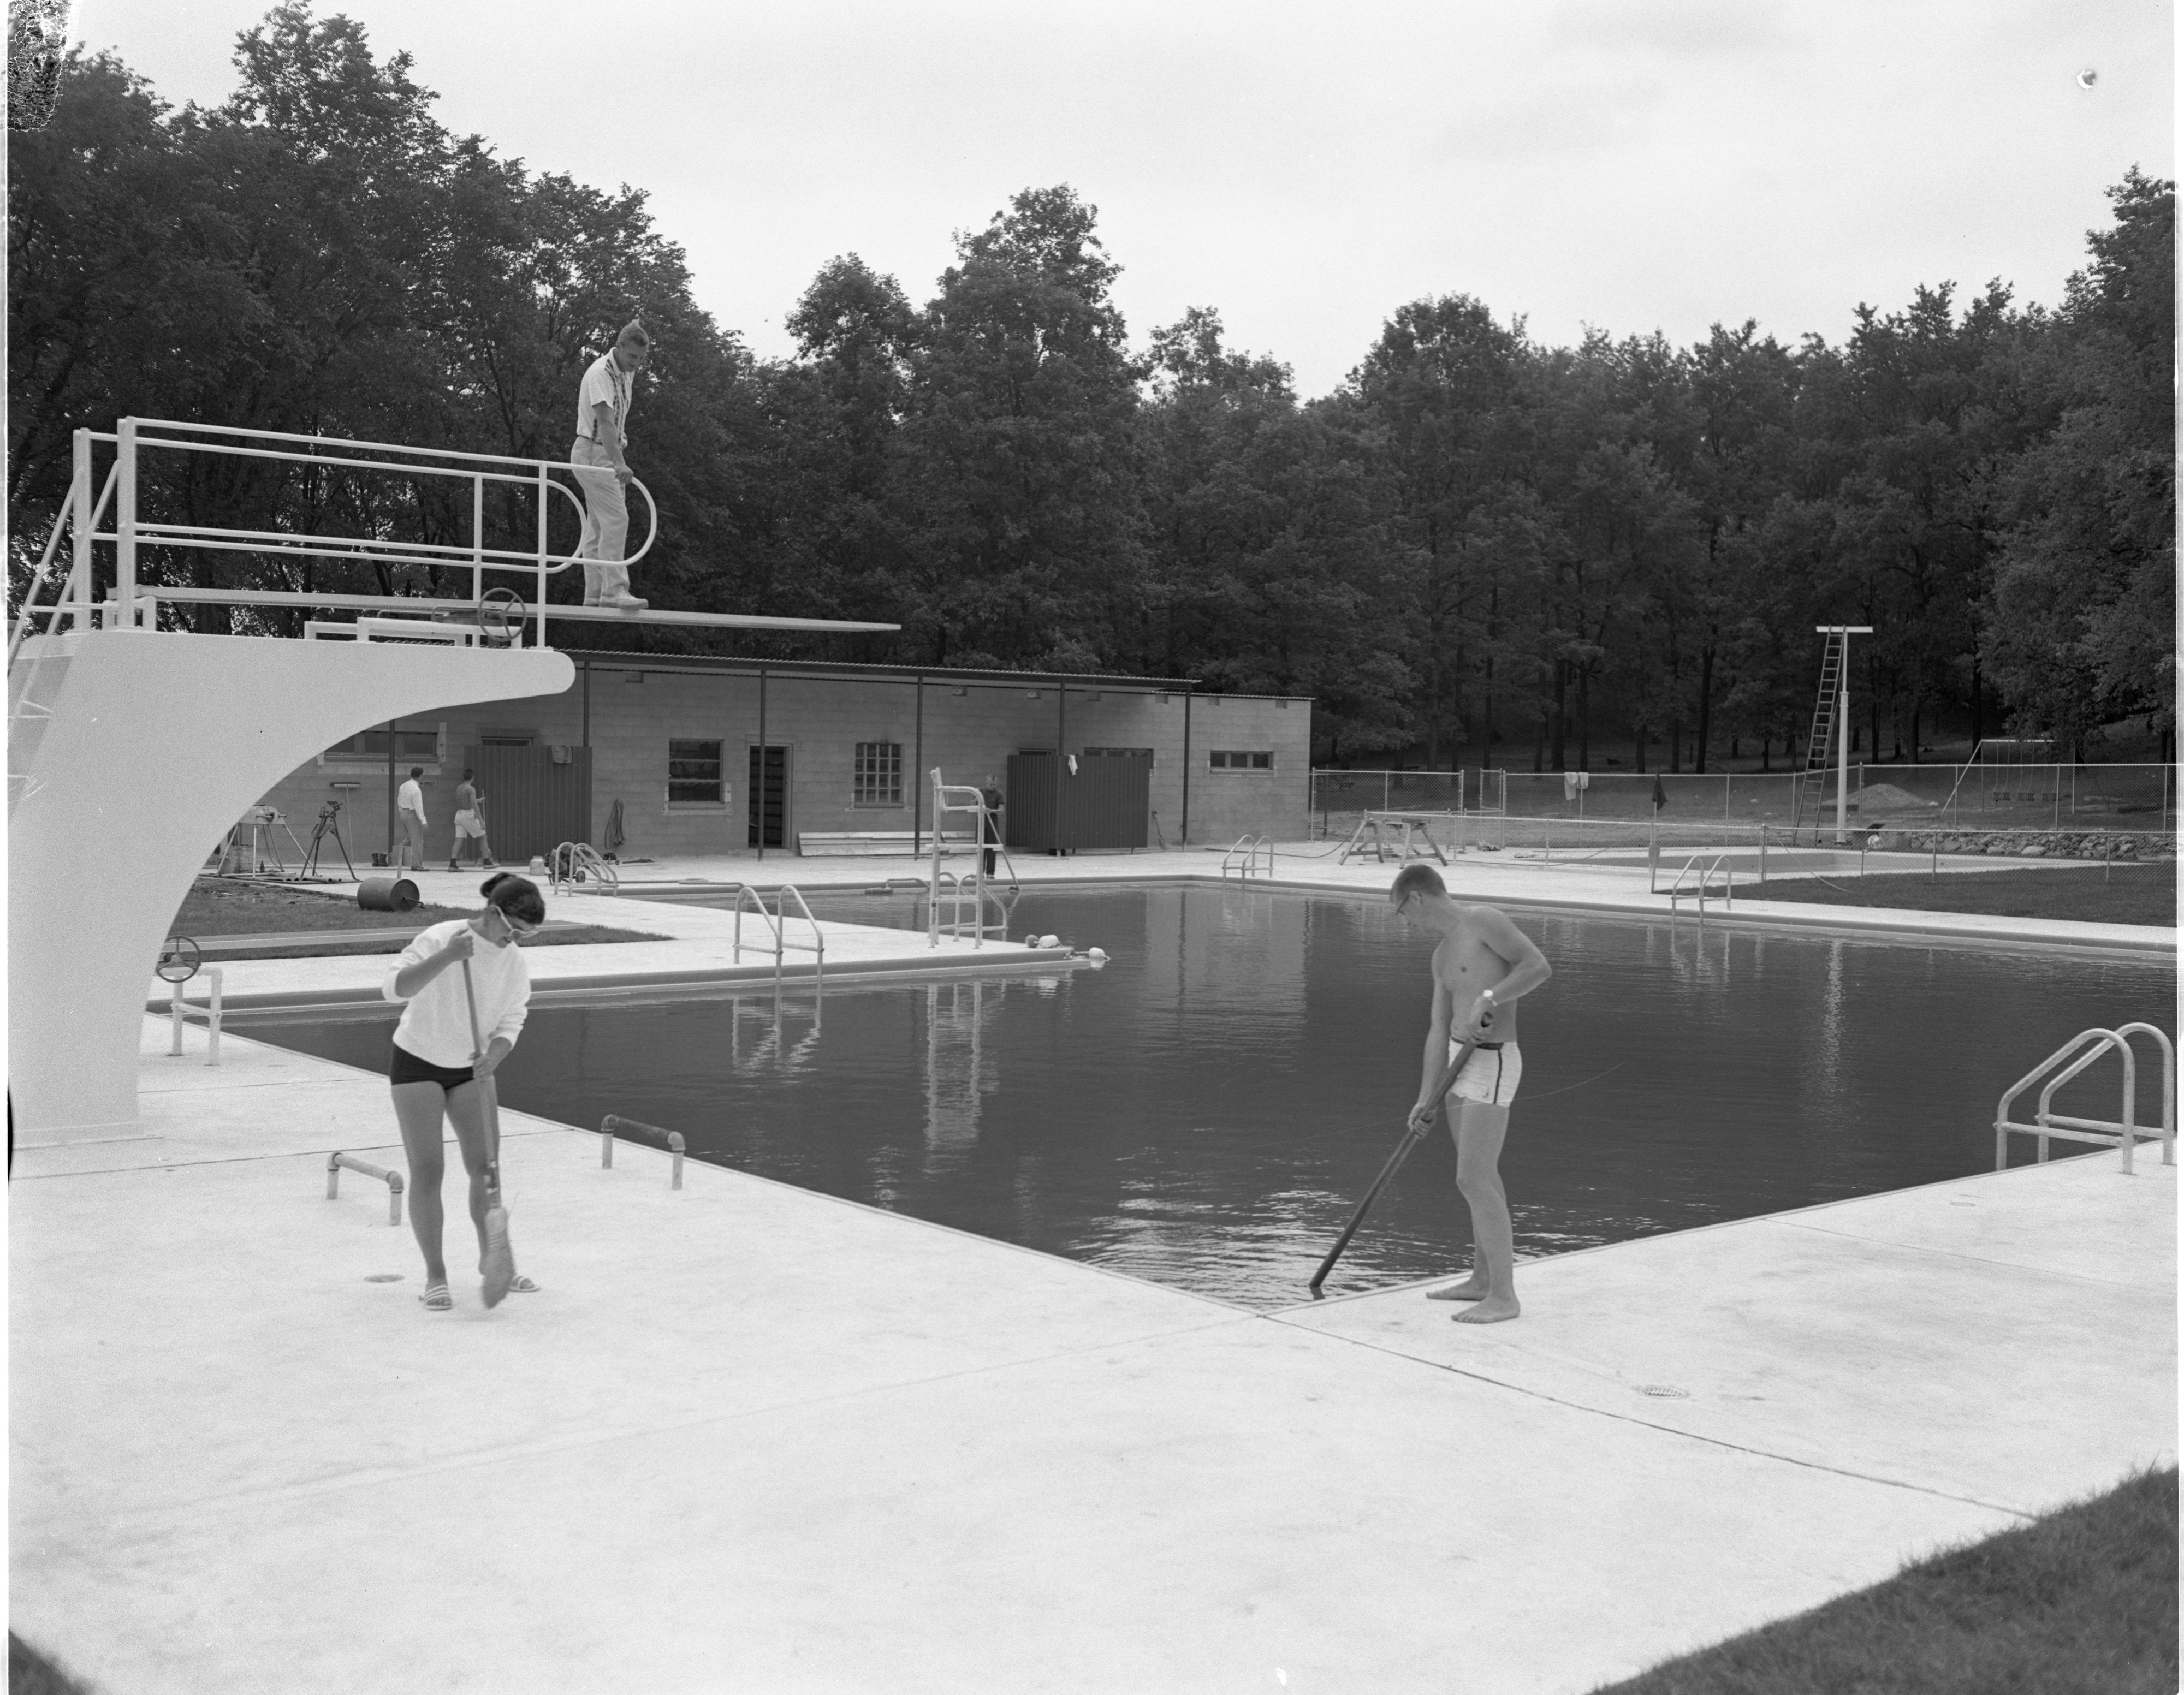 New Huron Valley Swim Club Pool Ready For Grand Opening, July 1958 image